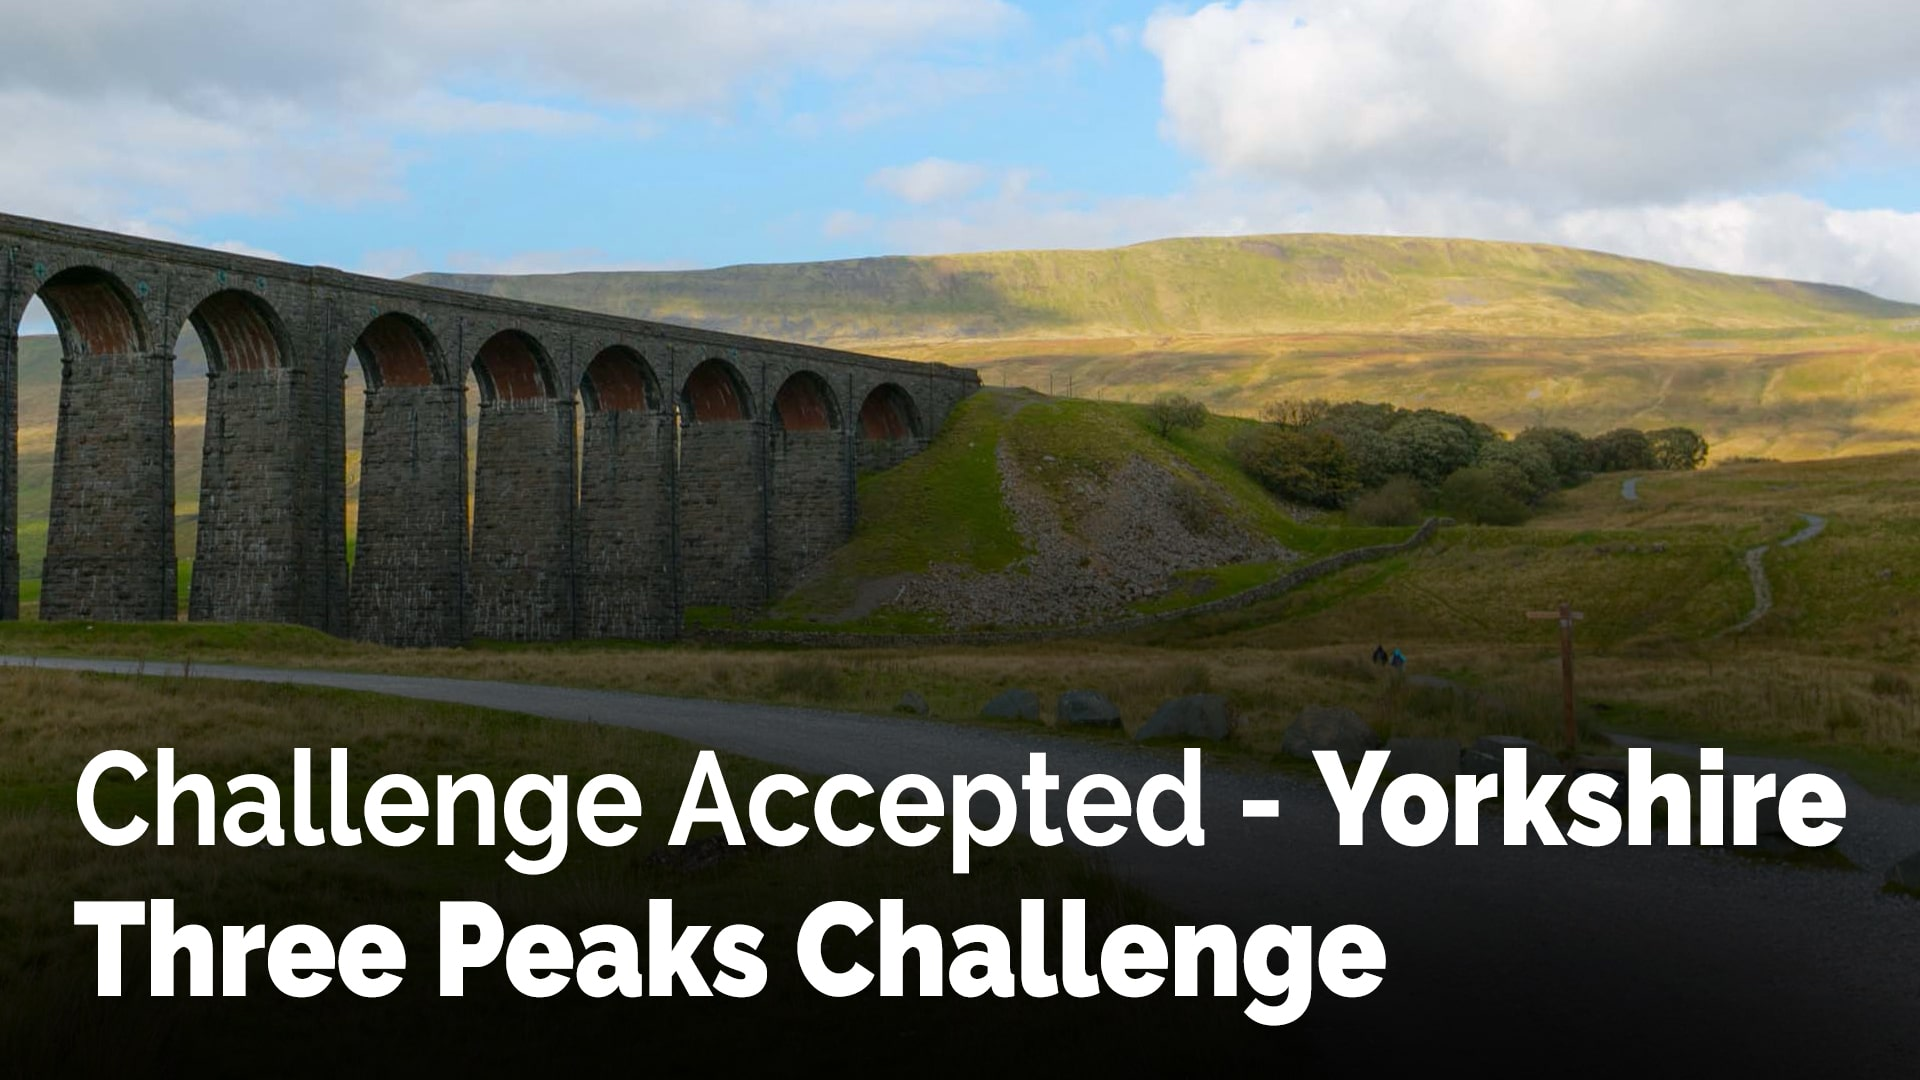 Challenge Accepted - Yorkshire Three Peaks Challenge